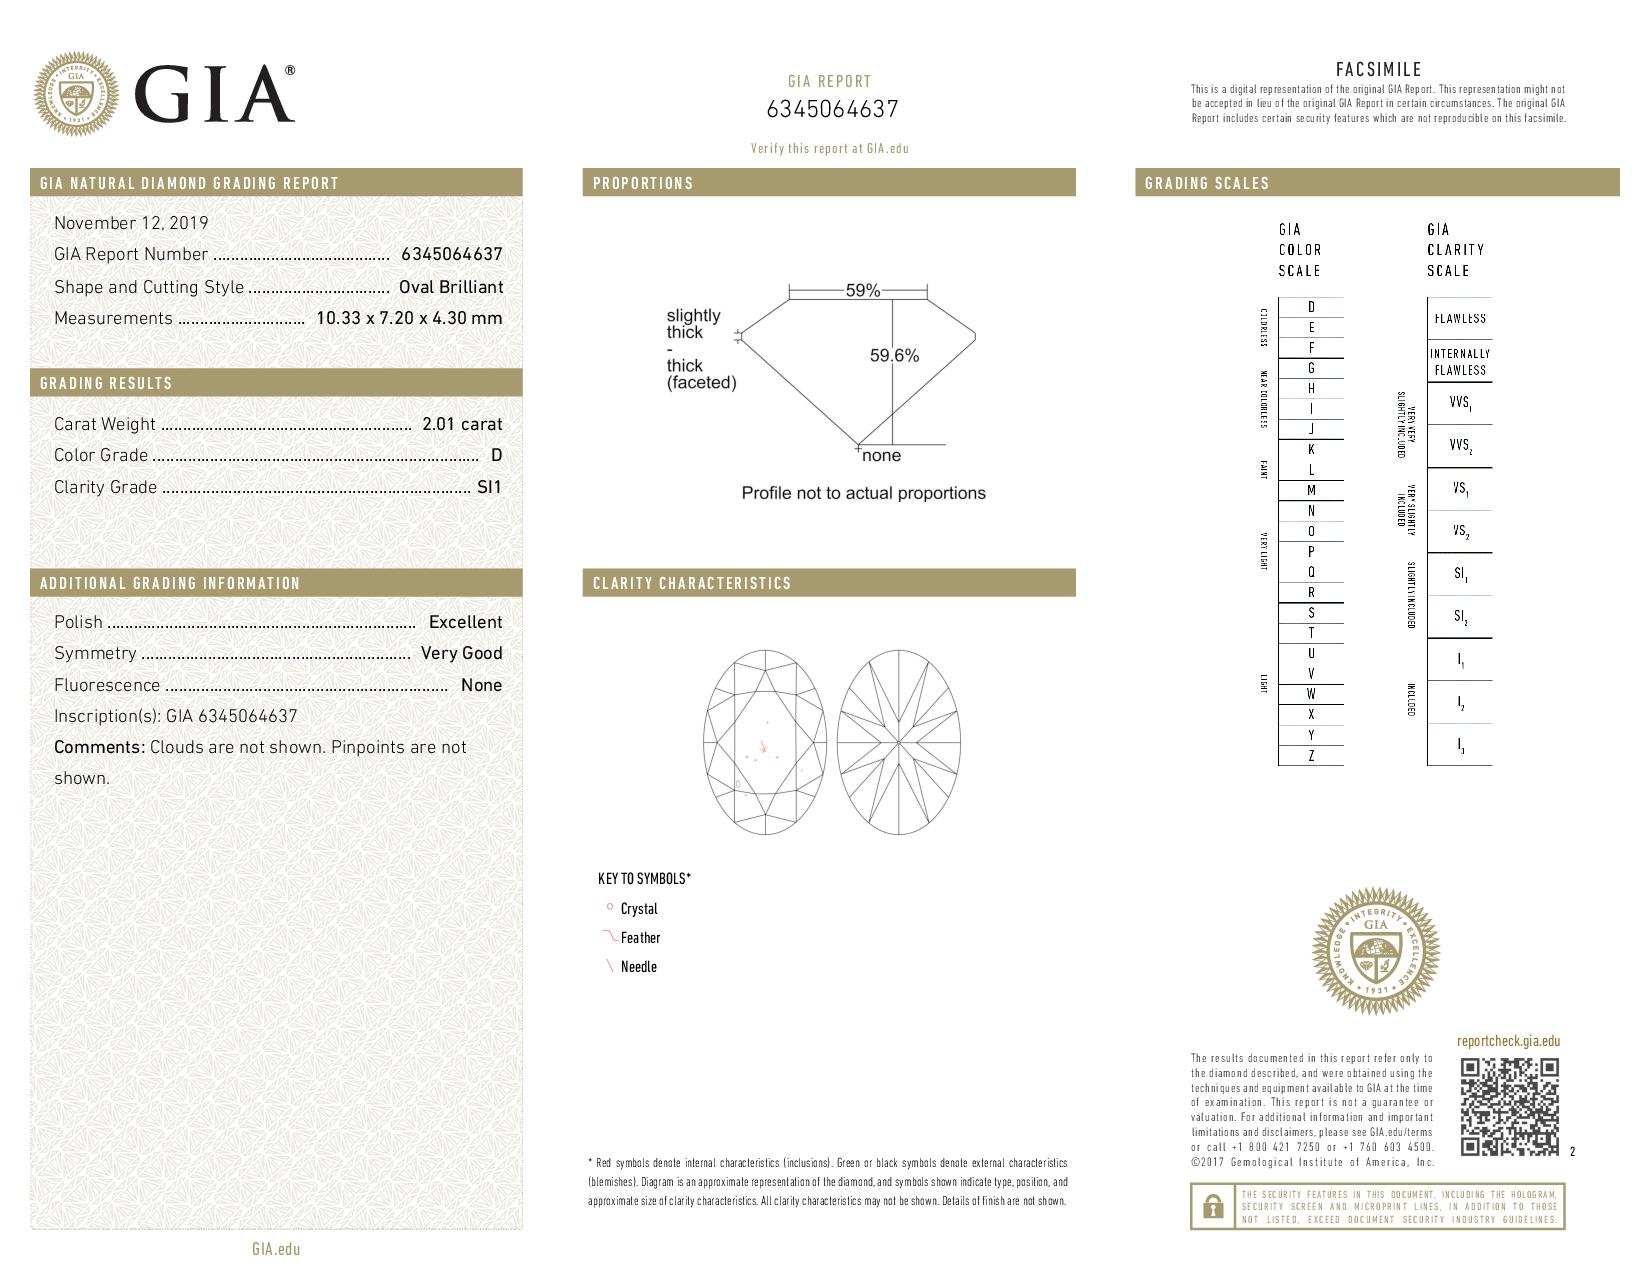 This is a 2.01 carat oval shape, D color, SI1 clarity natural diamond accompanied by a GIA grading report.